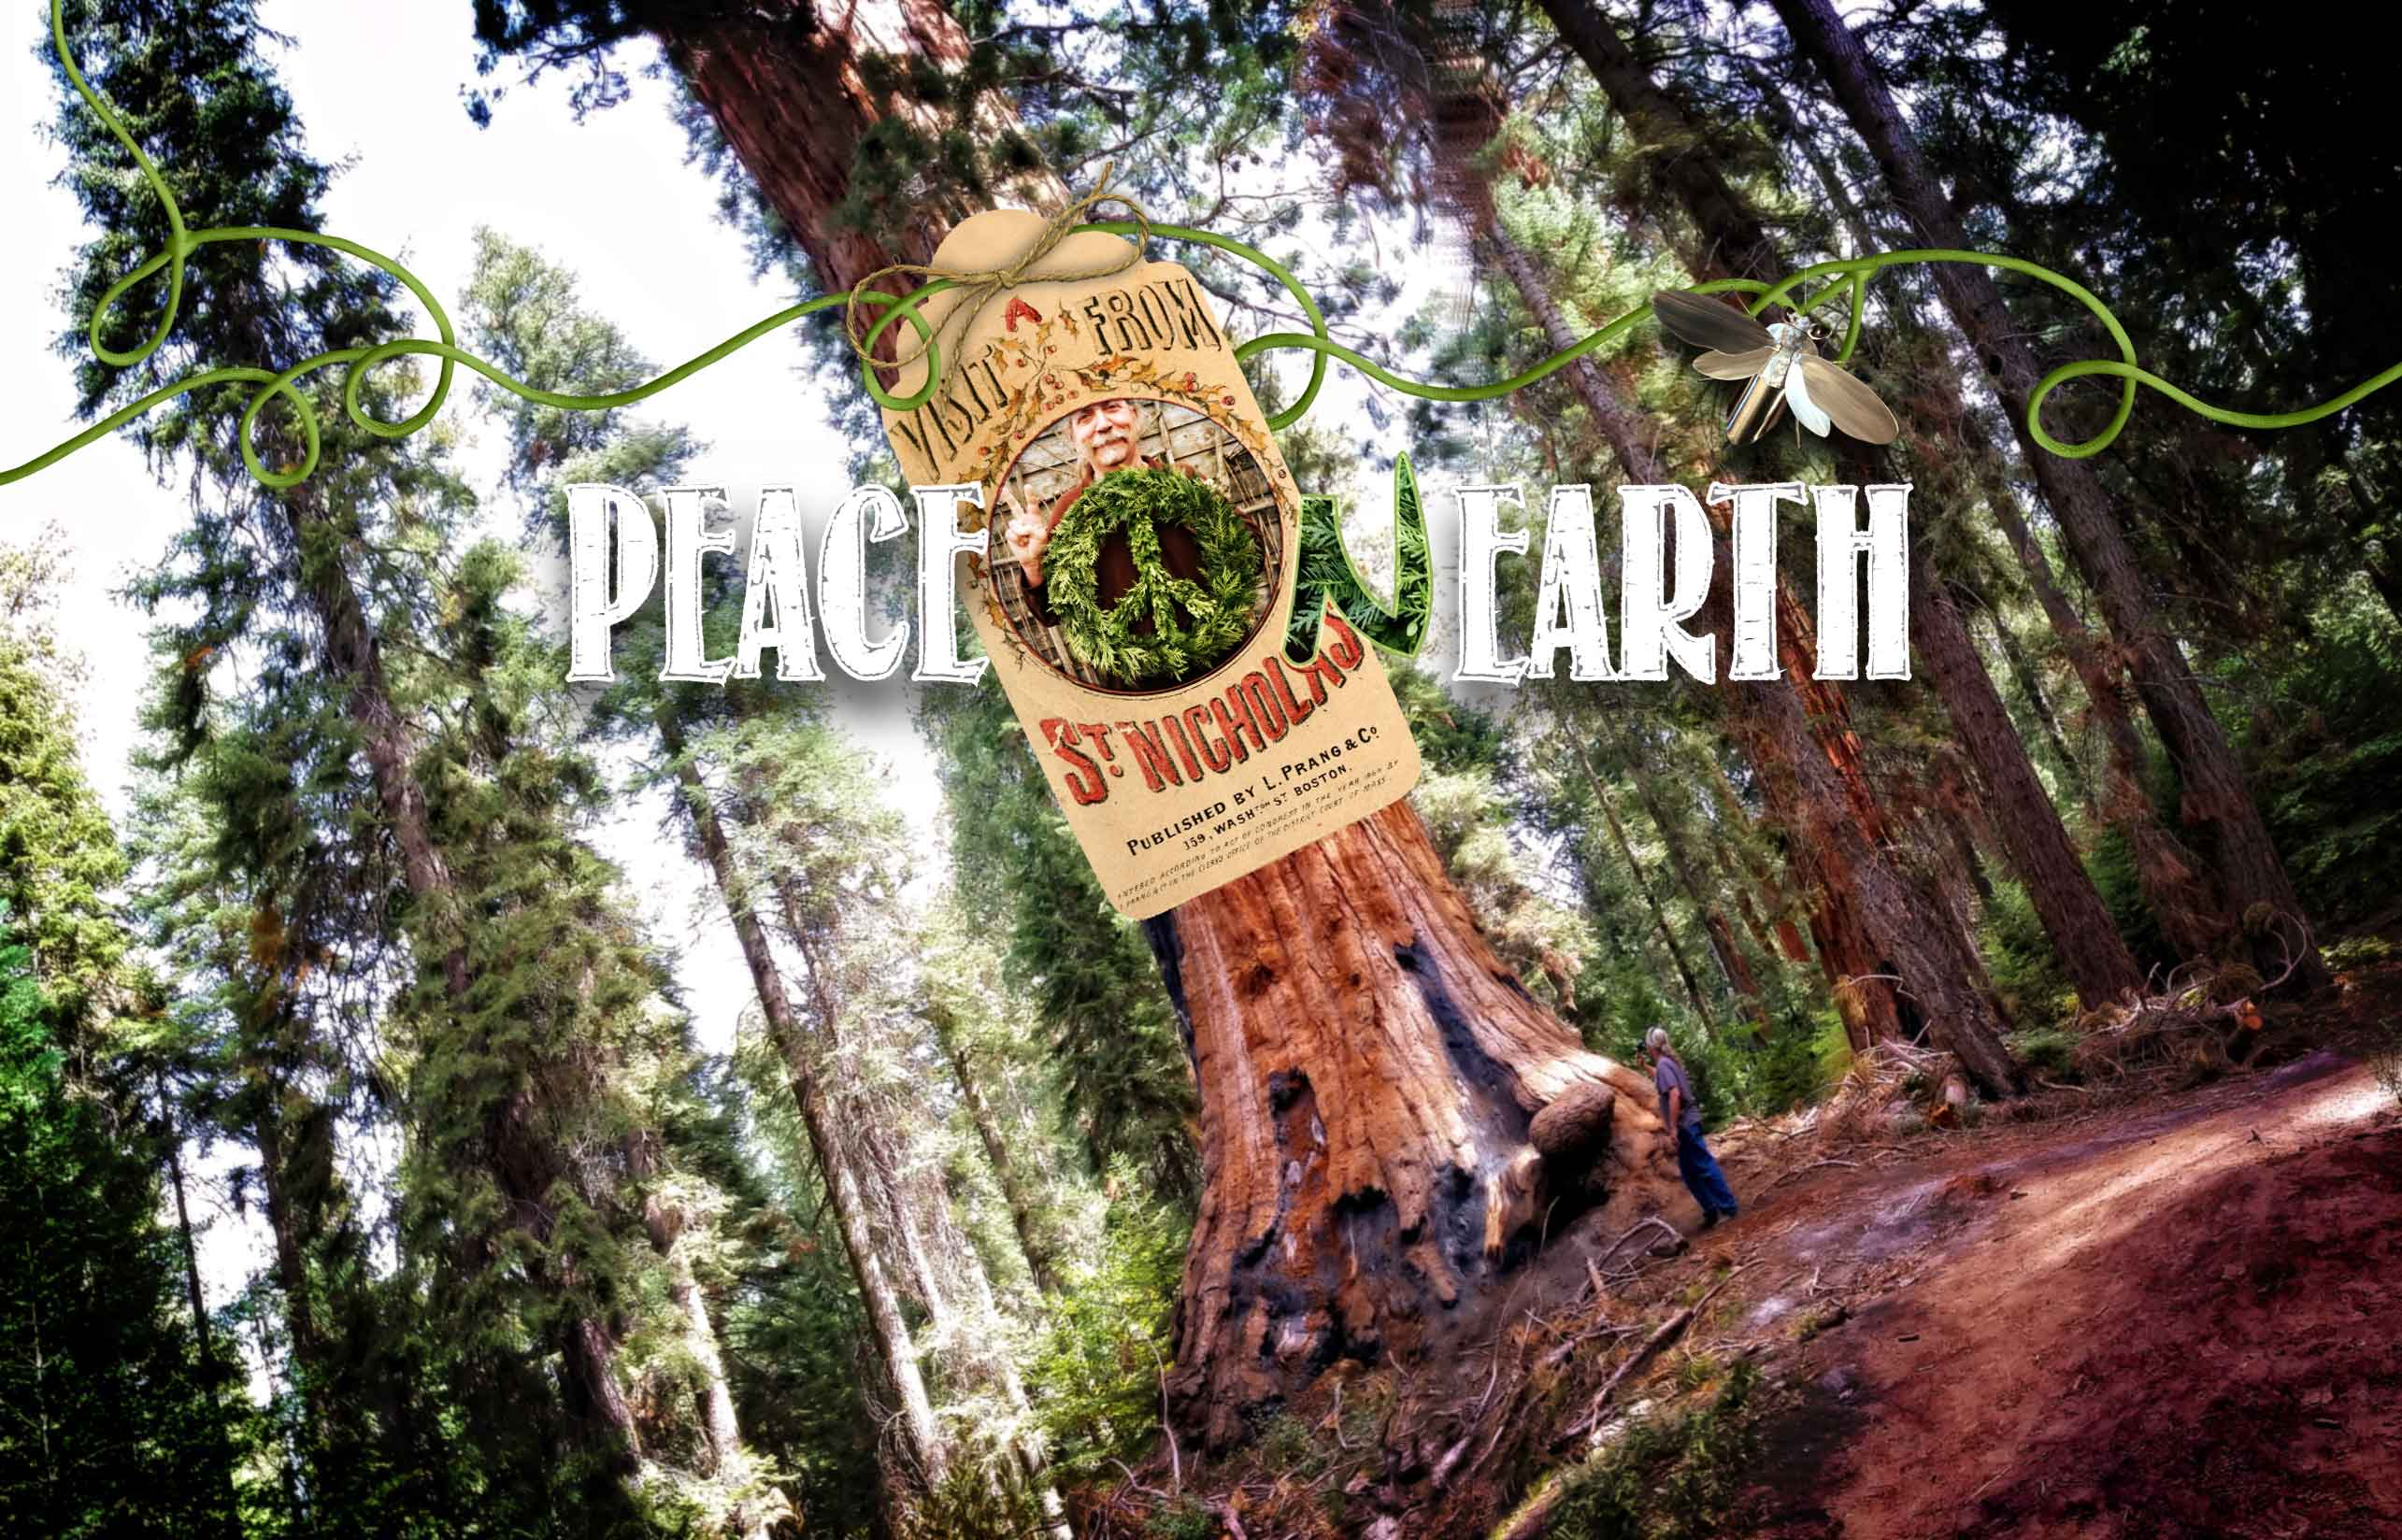 Peace on Earth and Big Trees